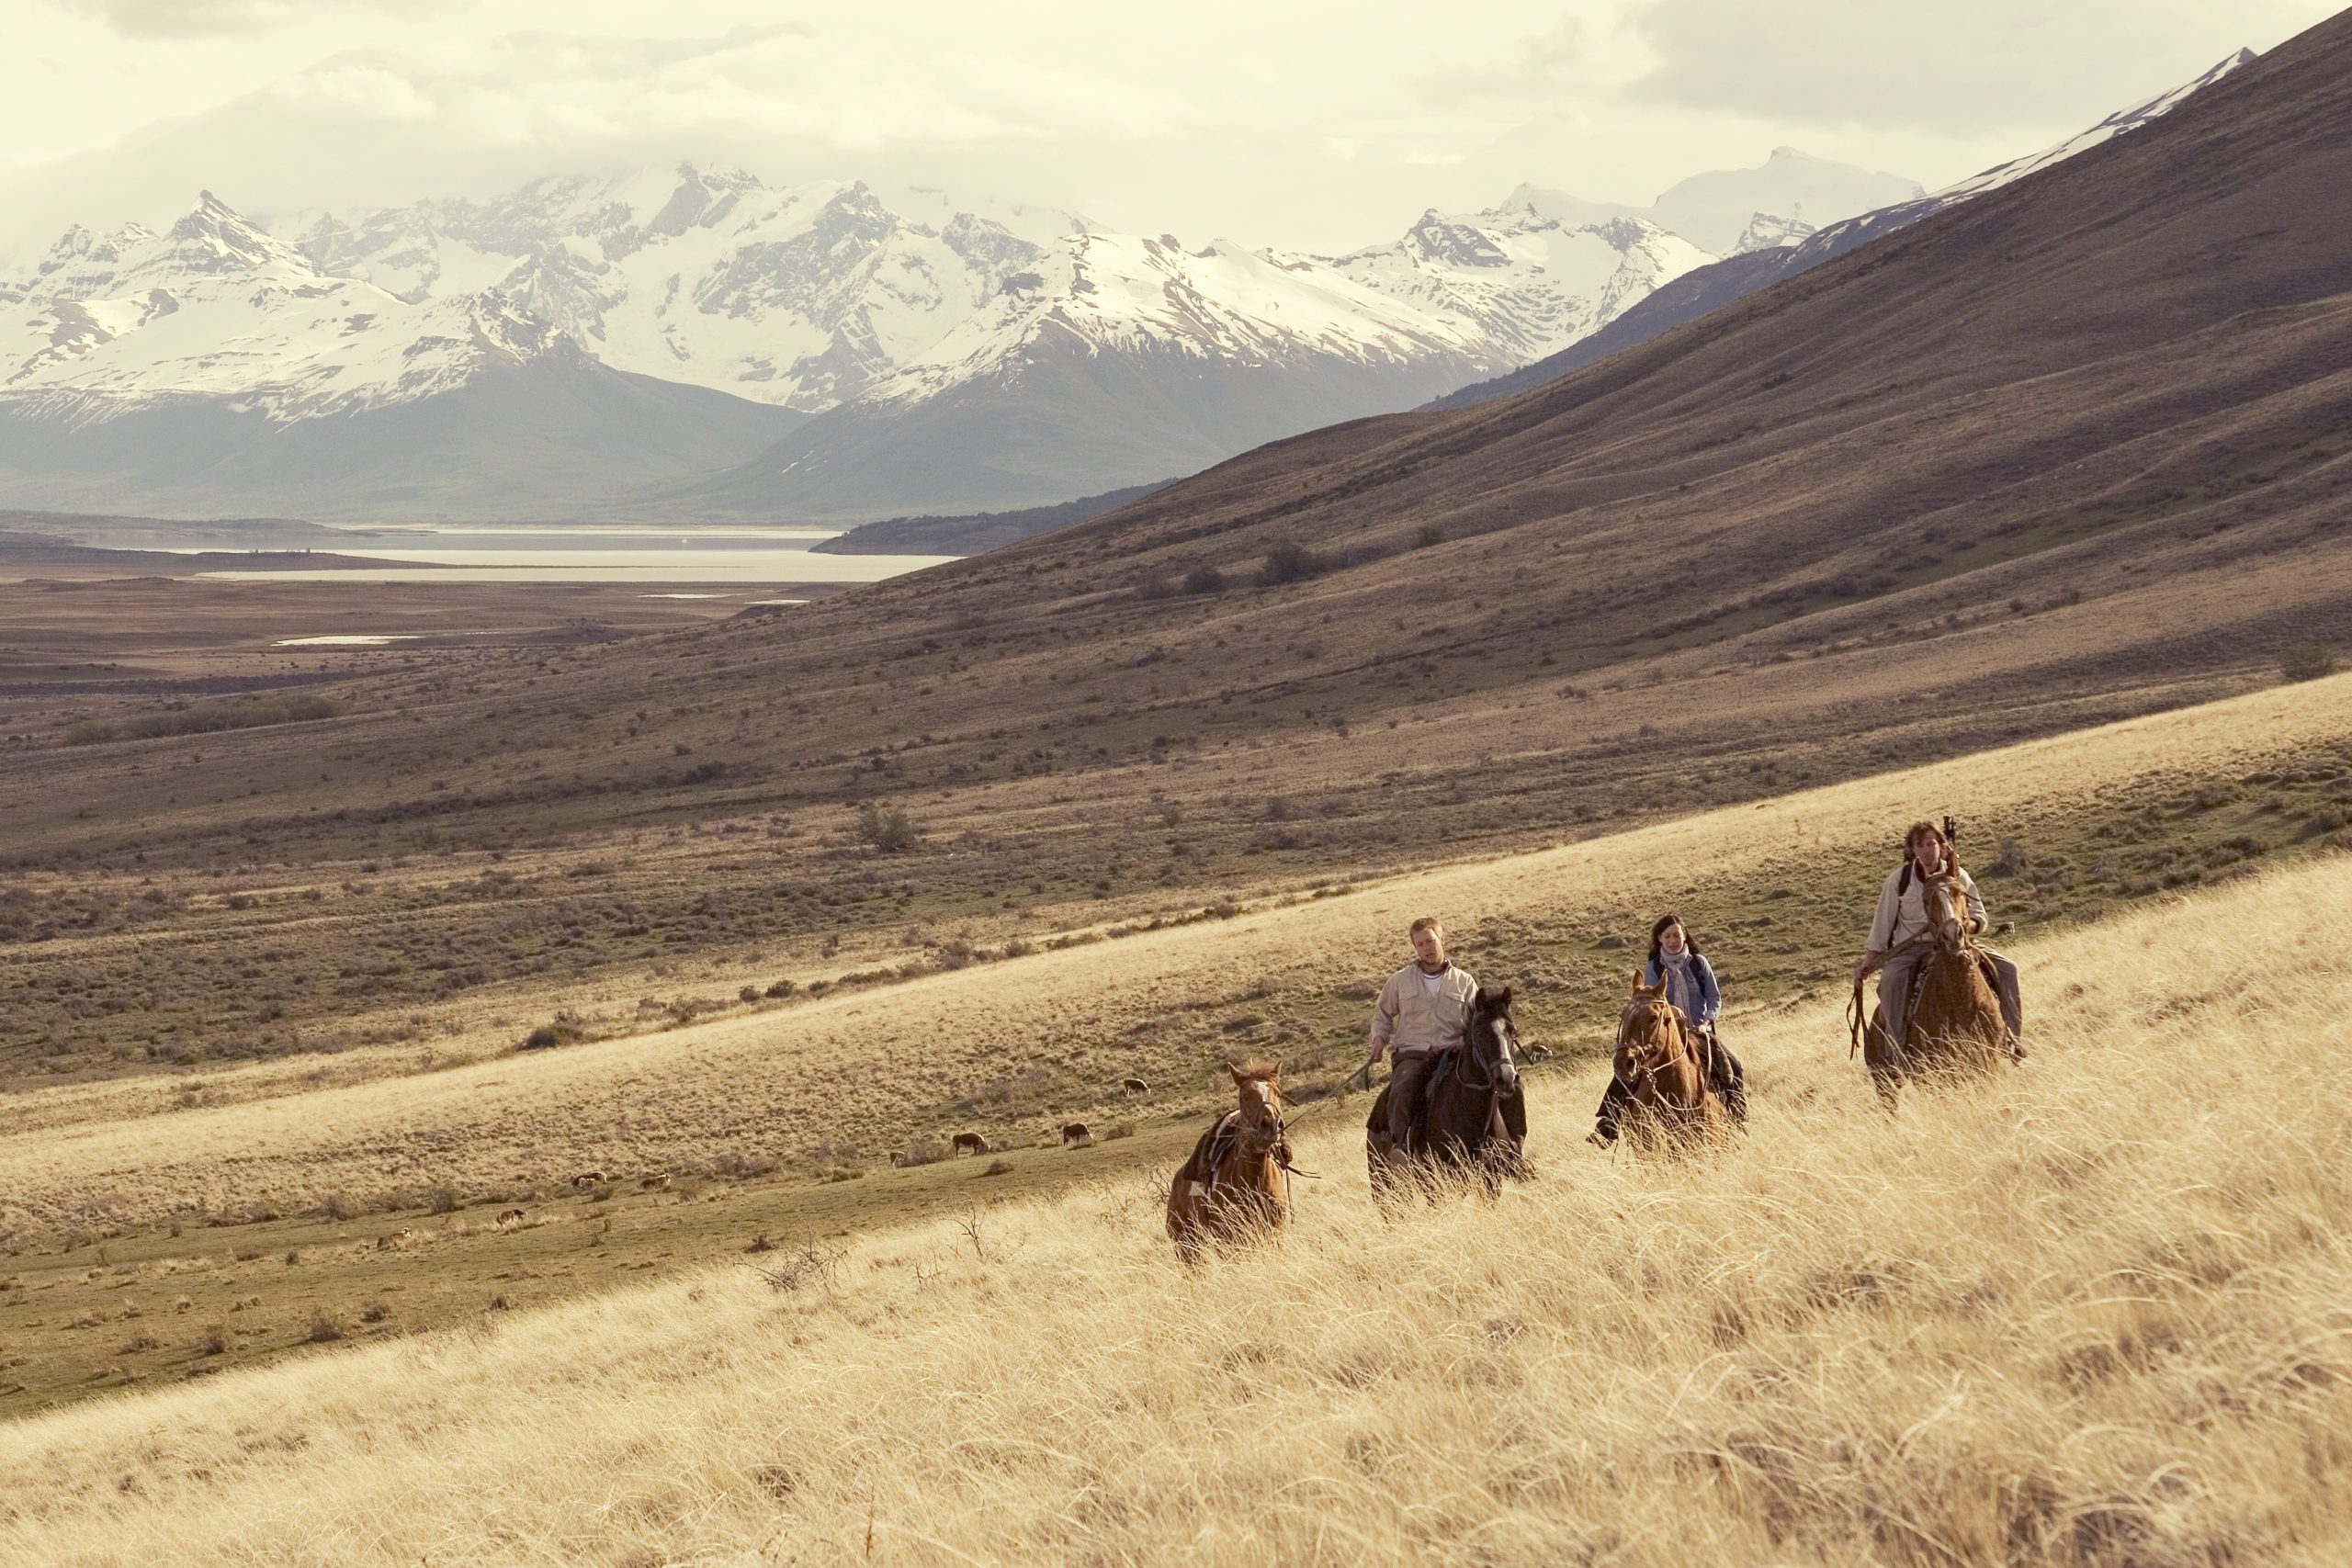 four people on horseback in a grassy field with mountains in the background